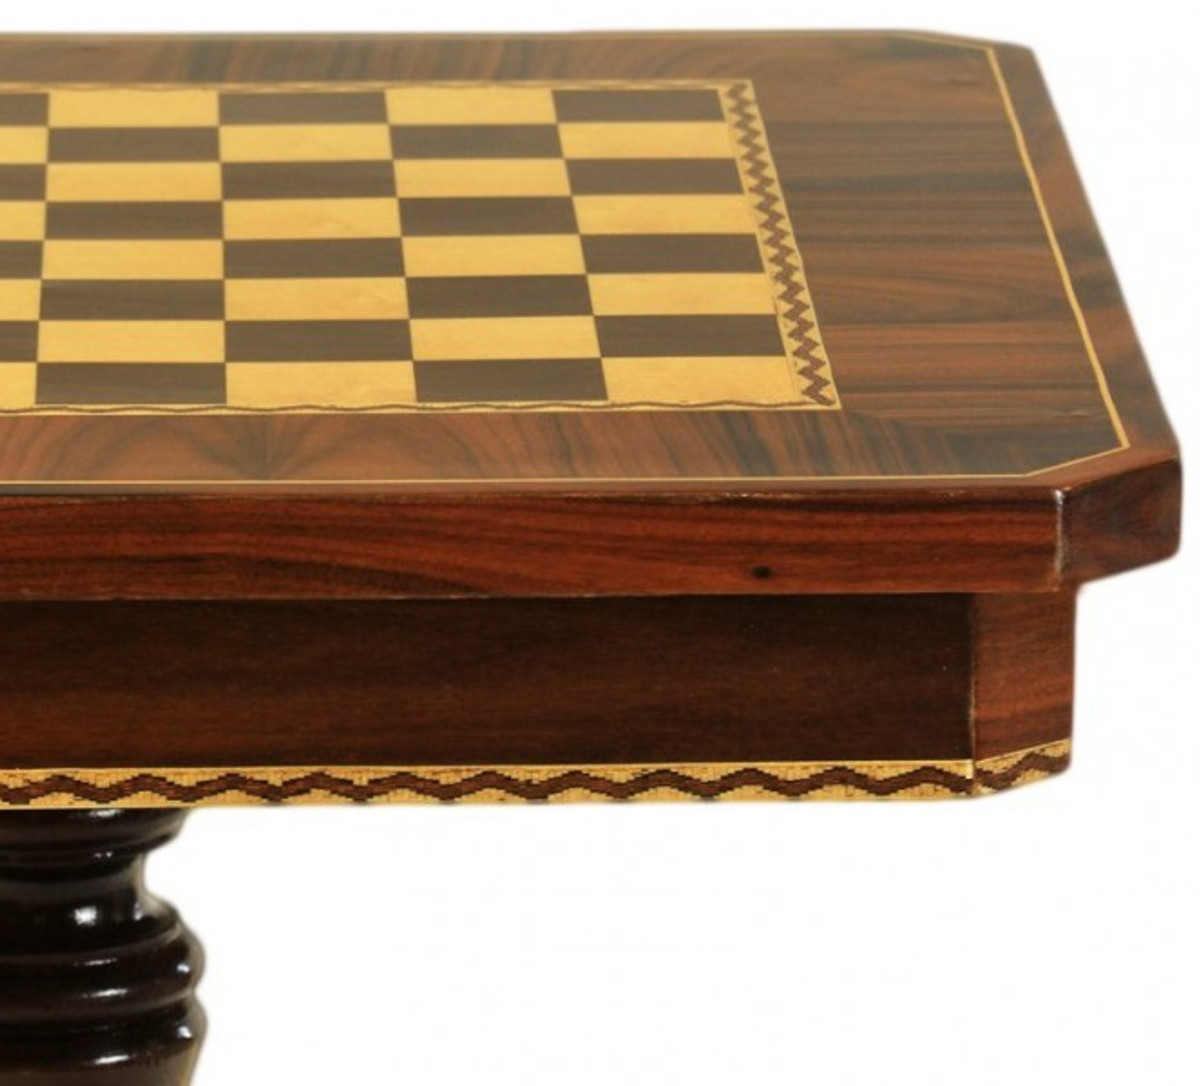 casa padrino barock spieltisch schach dame tisch mahagoni m bel antik stil art deco. Black Bedroom Furniture Sets. Home Design Ideas